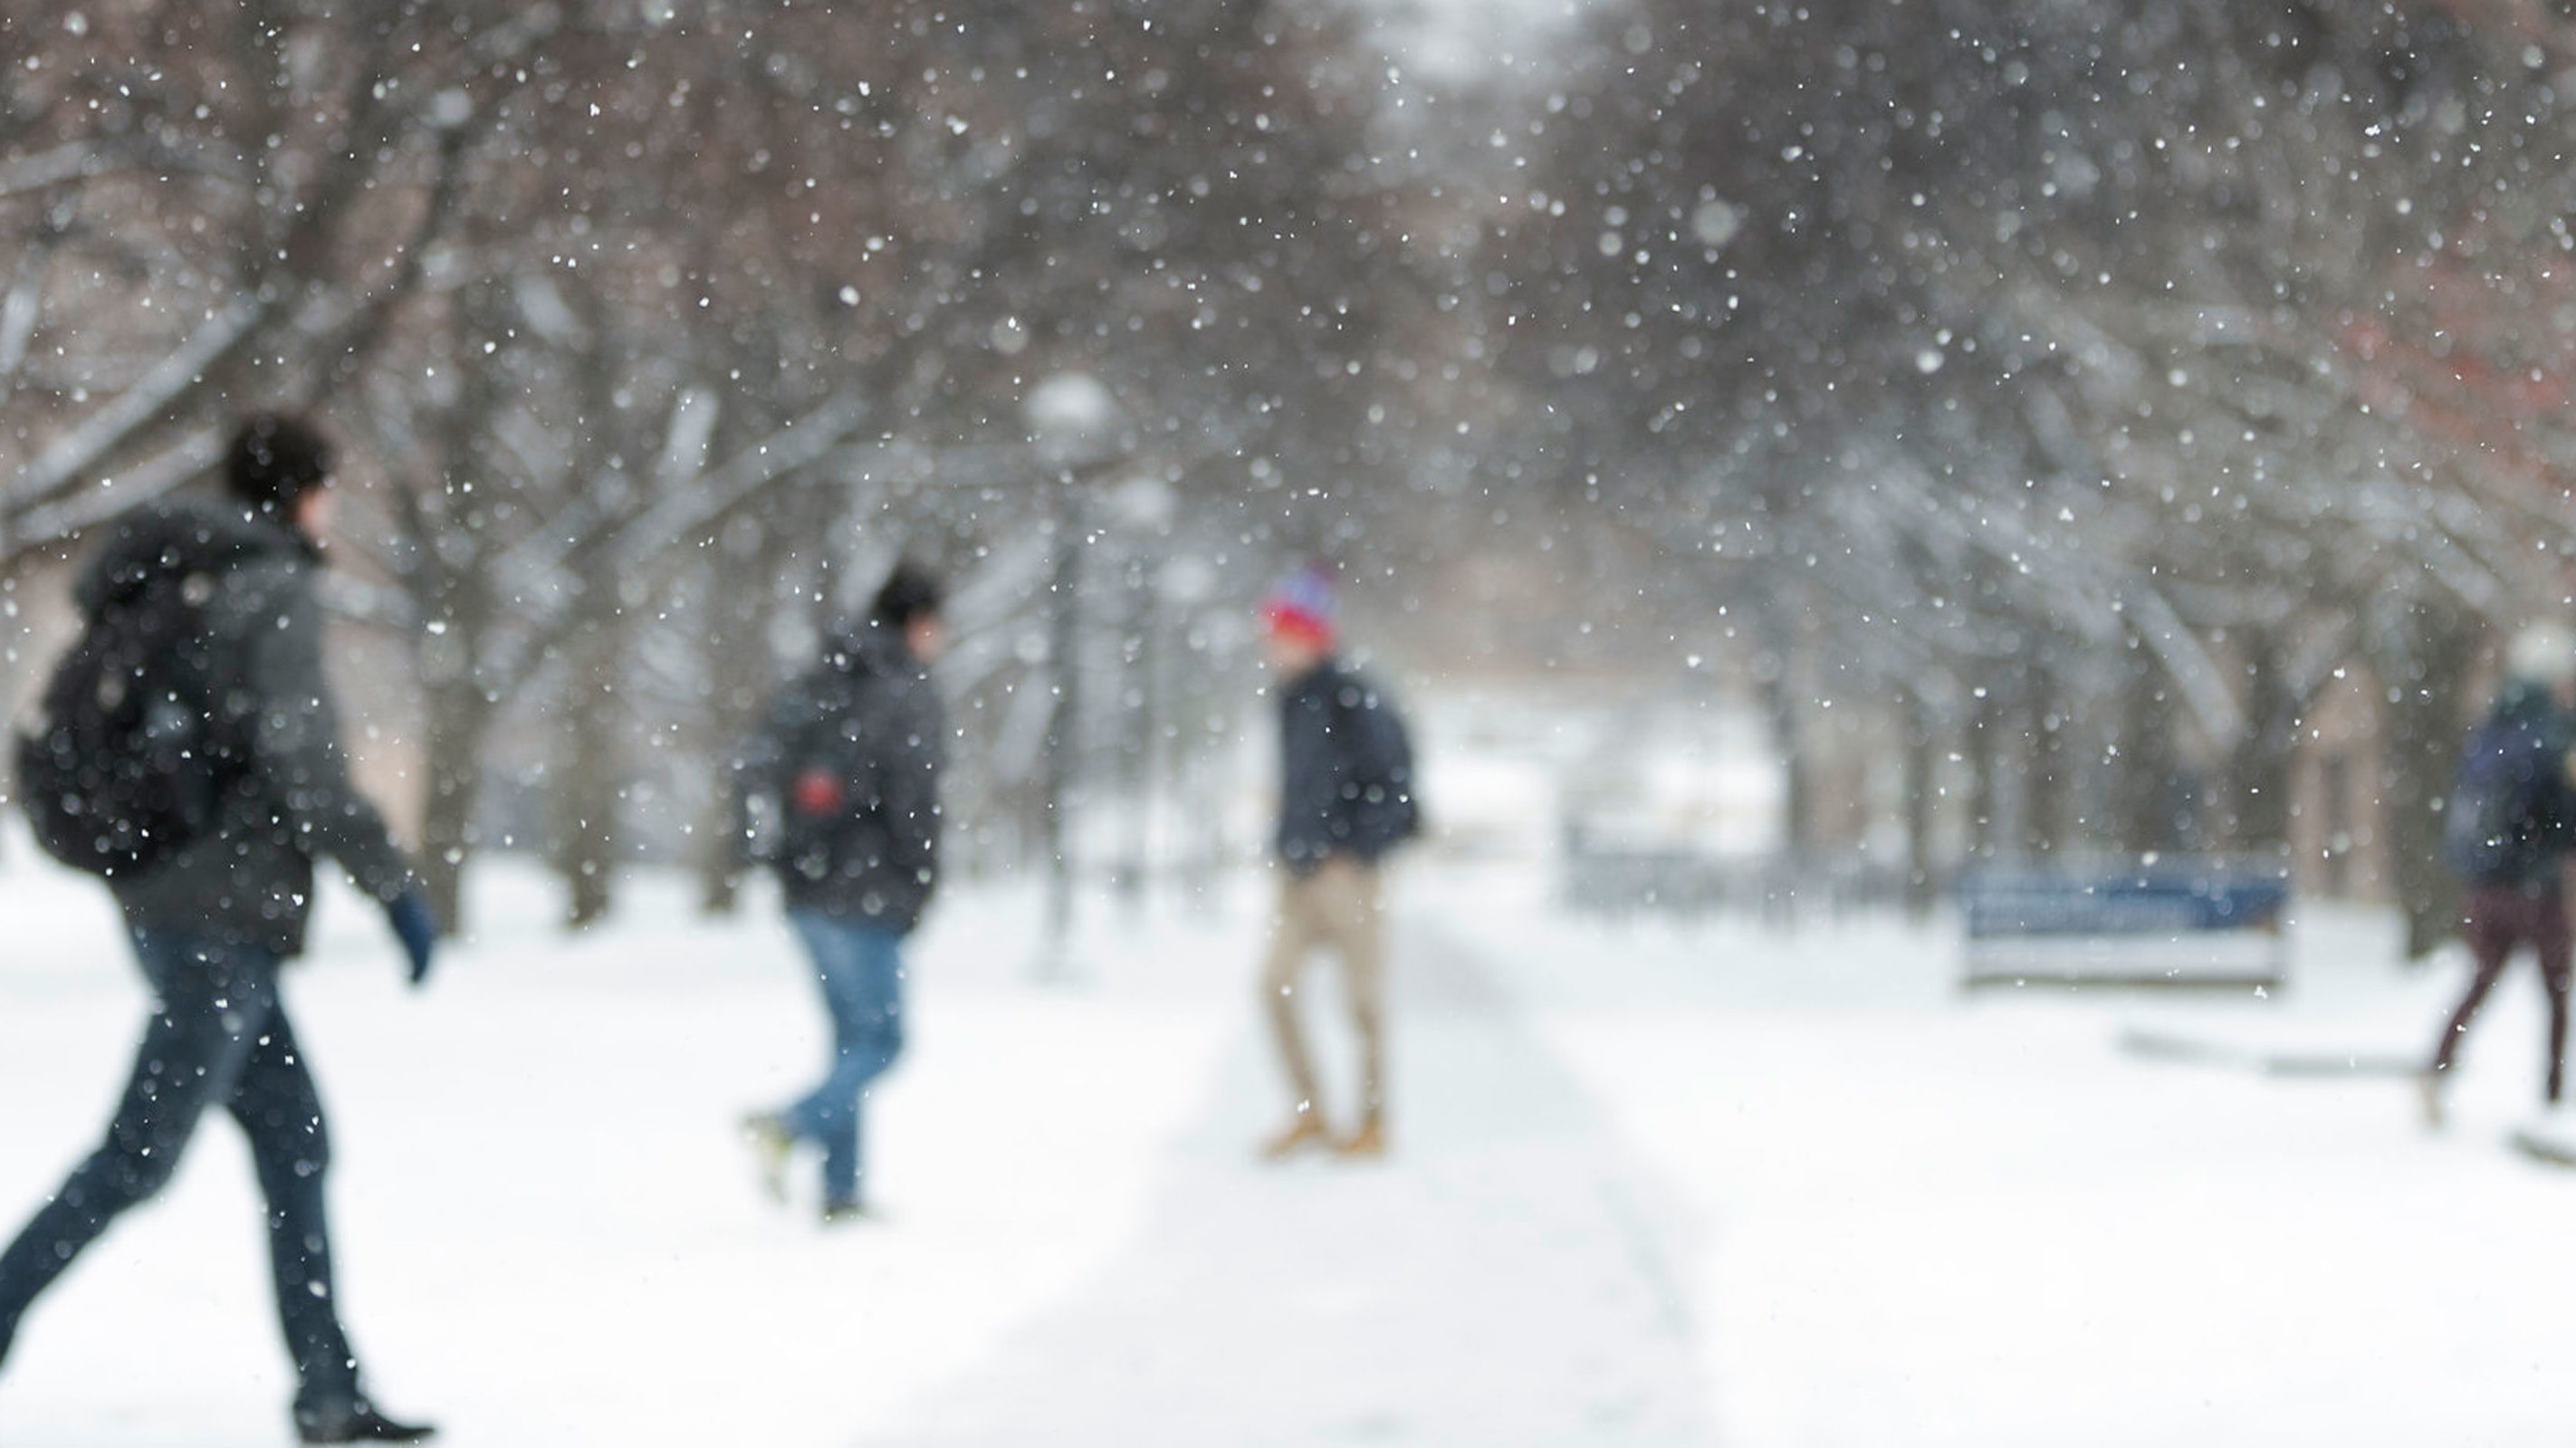 Students walking to class amidst falling snow